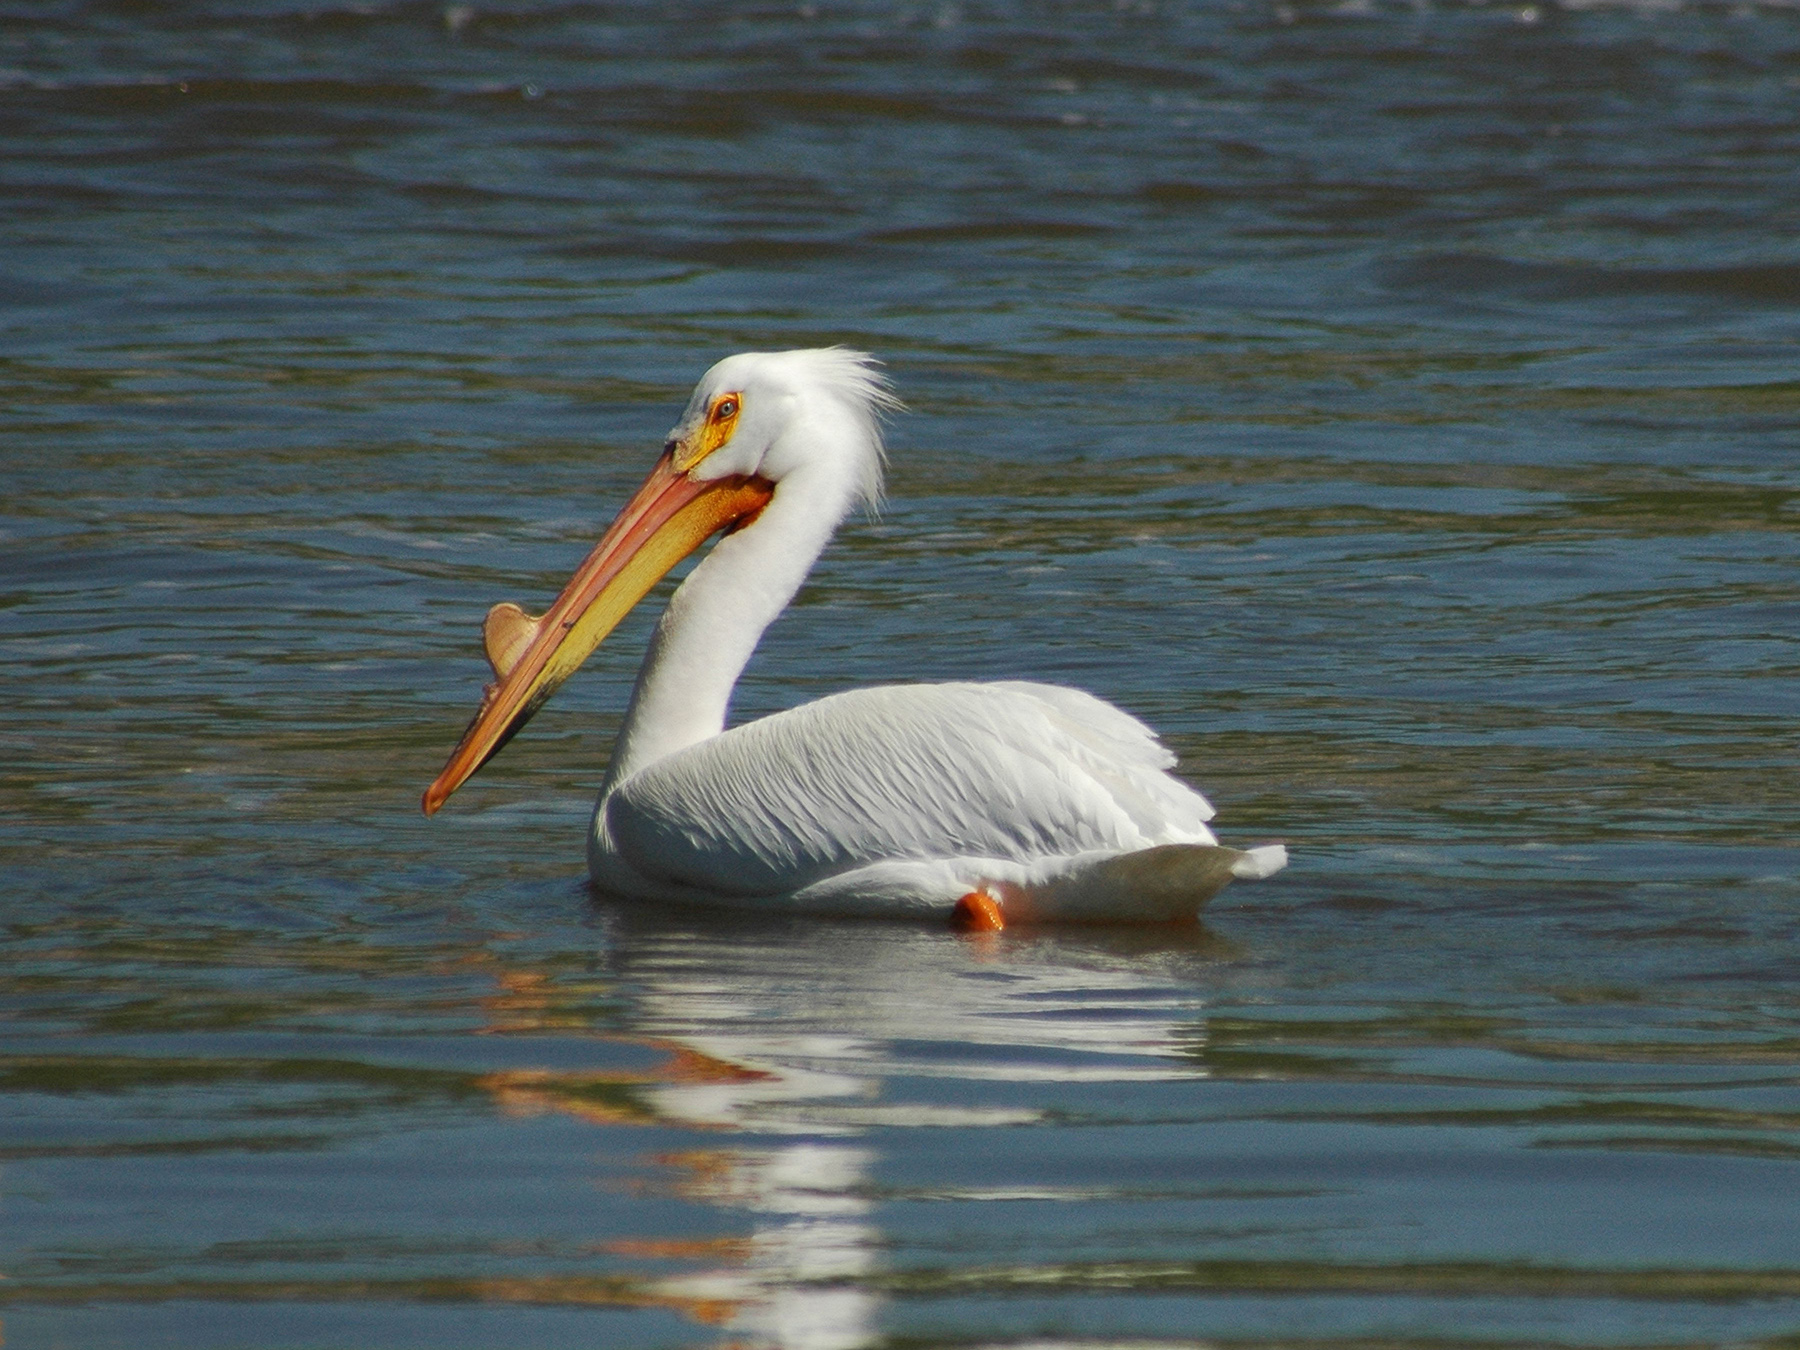 White Pelican in the Gulf of Mexico. Credit: U.S. Dept. of Interior